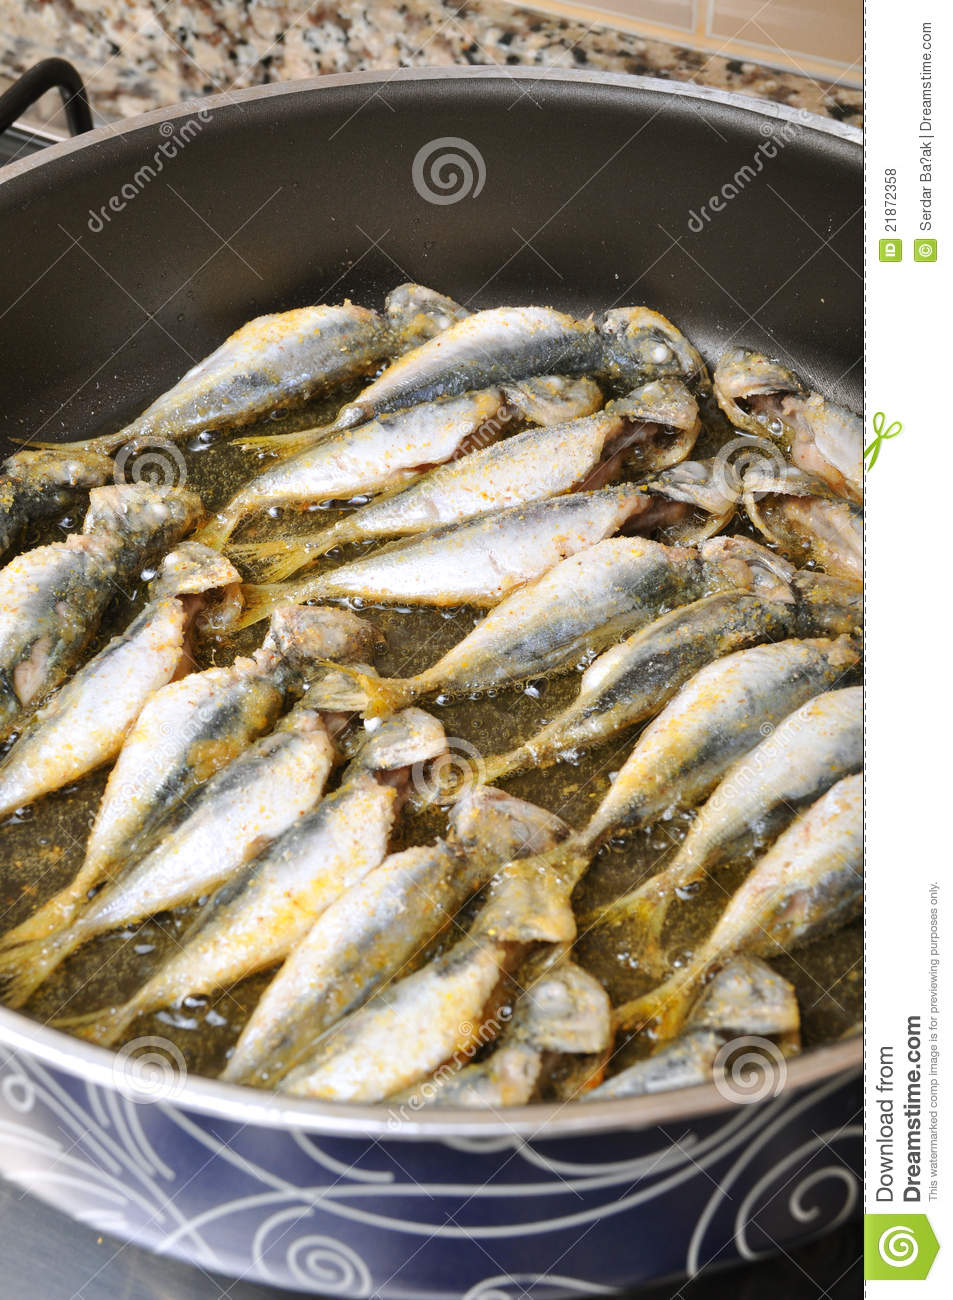 Frying fish royalty free stock photos image 21872358 for Best oil for frying fish